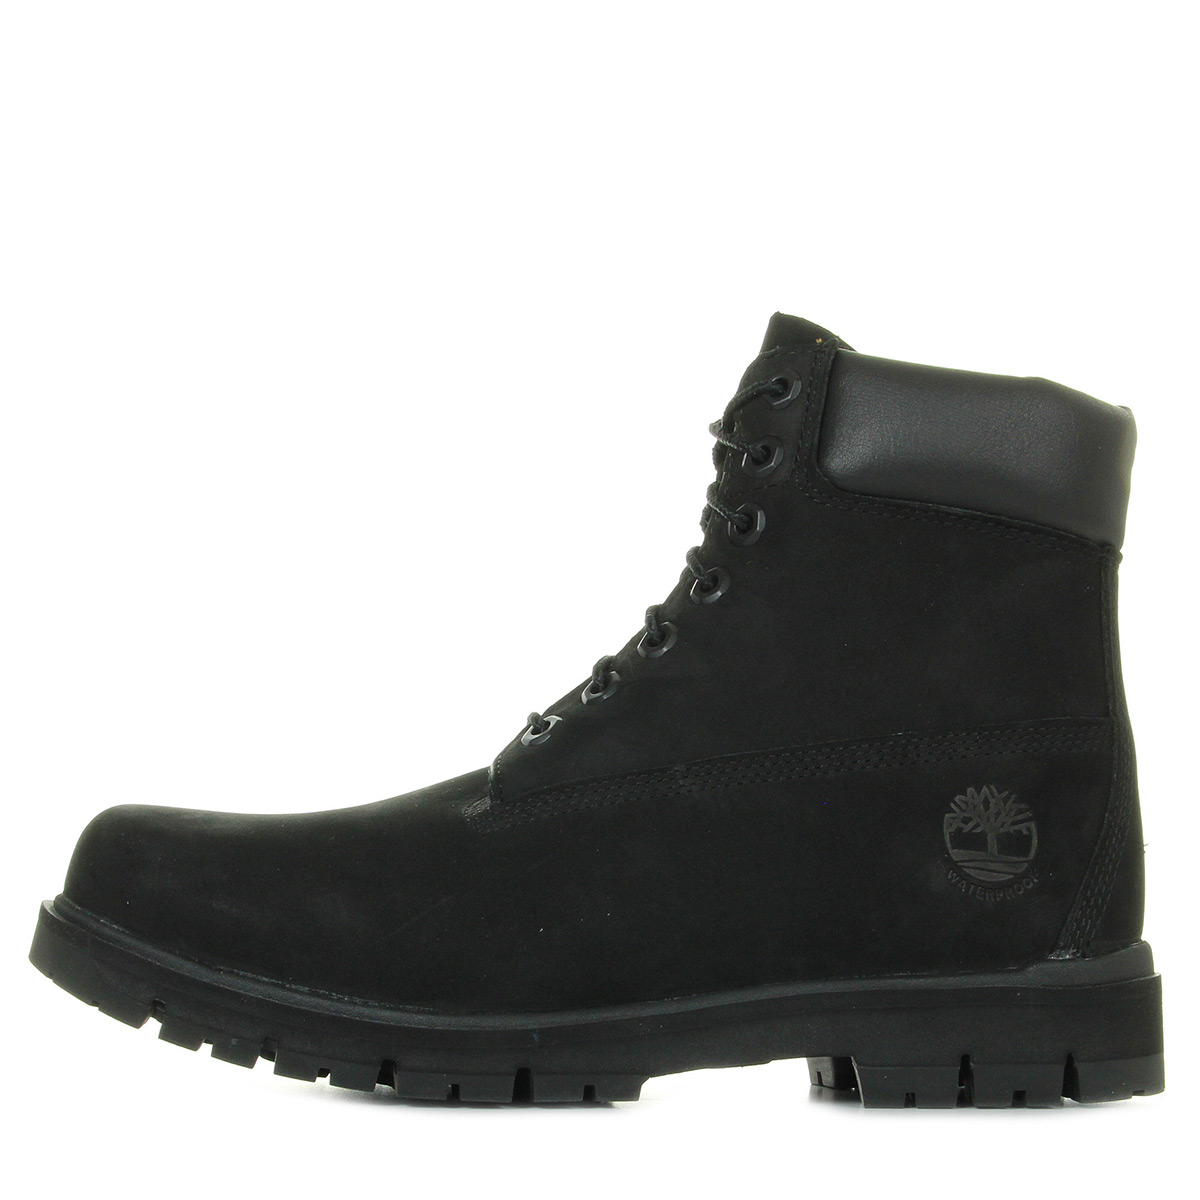 Timberland Radford 6 Boot WP Black CA1JI2, Boots homme